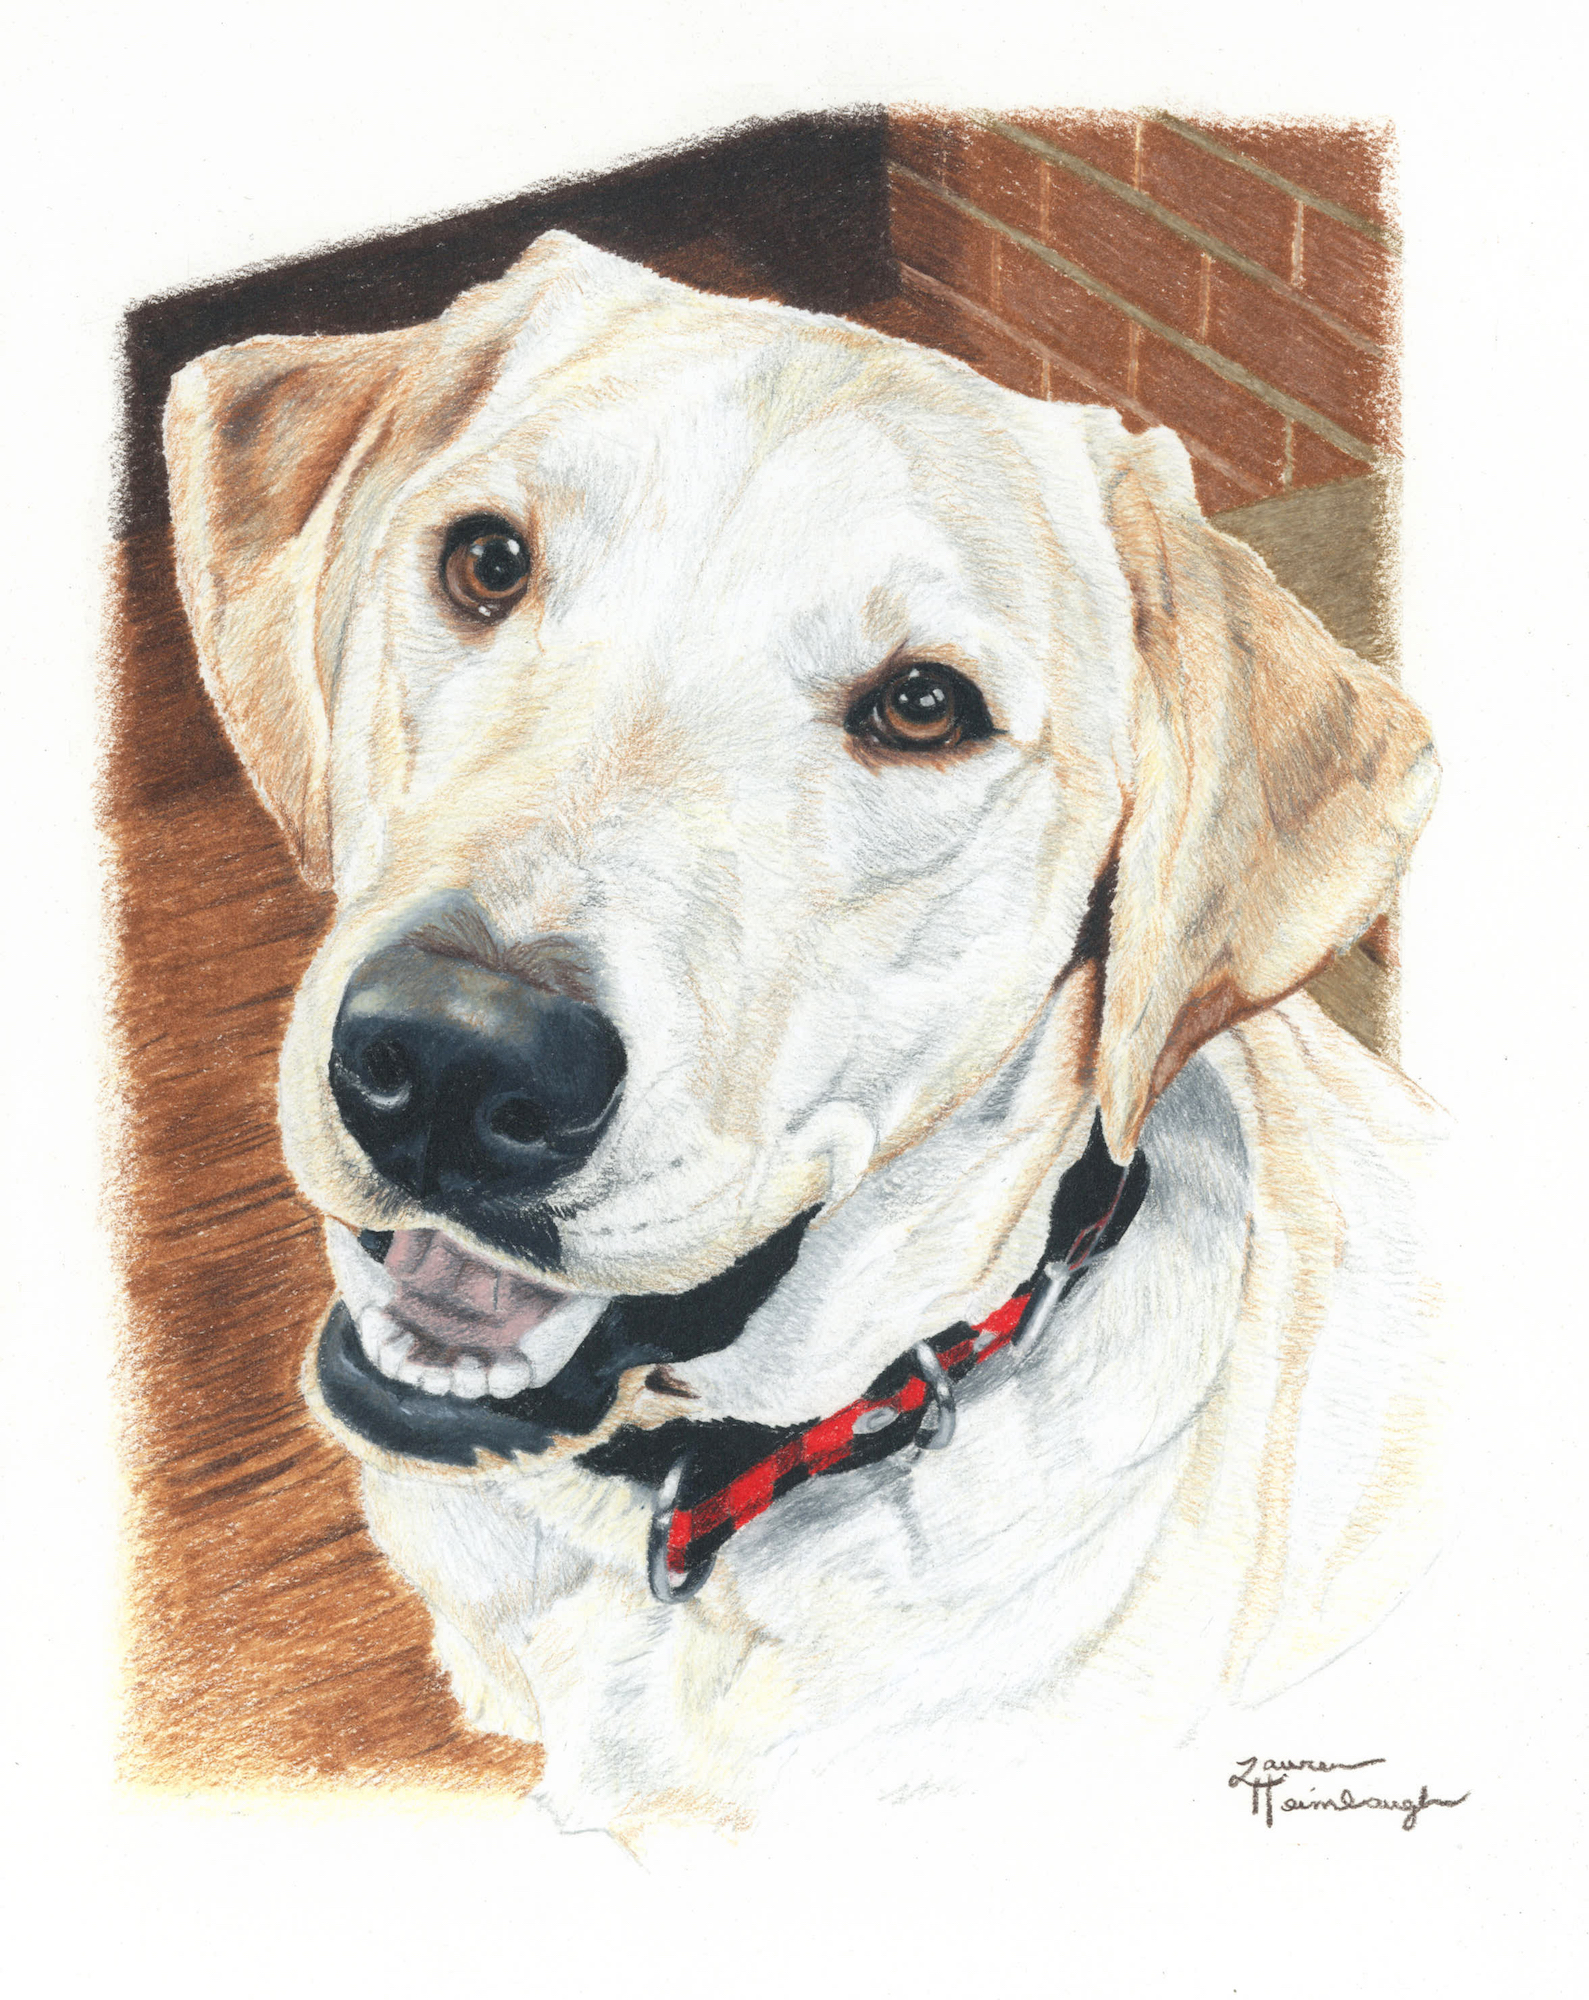 Truman the Labrador Retriever (2013)